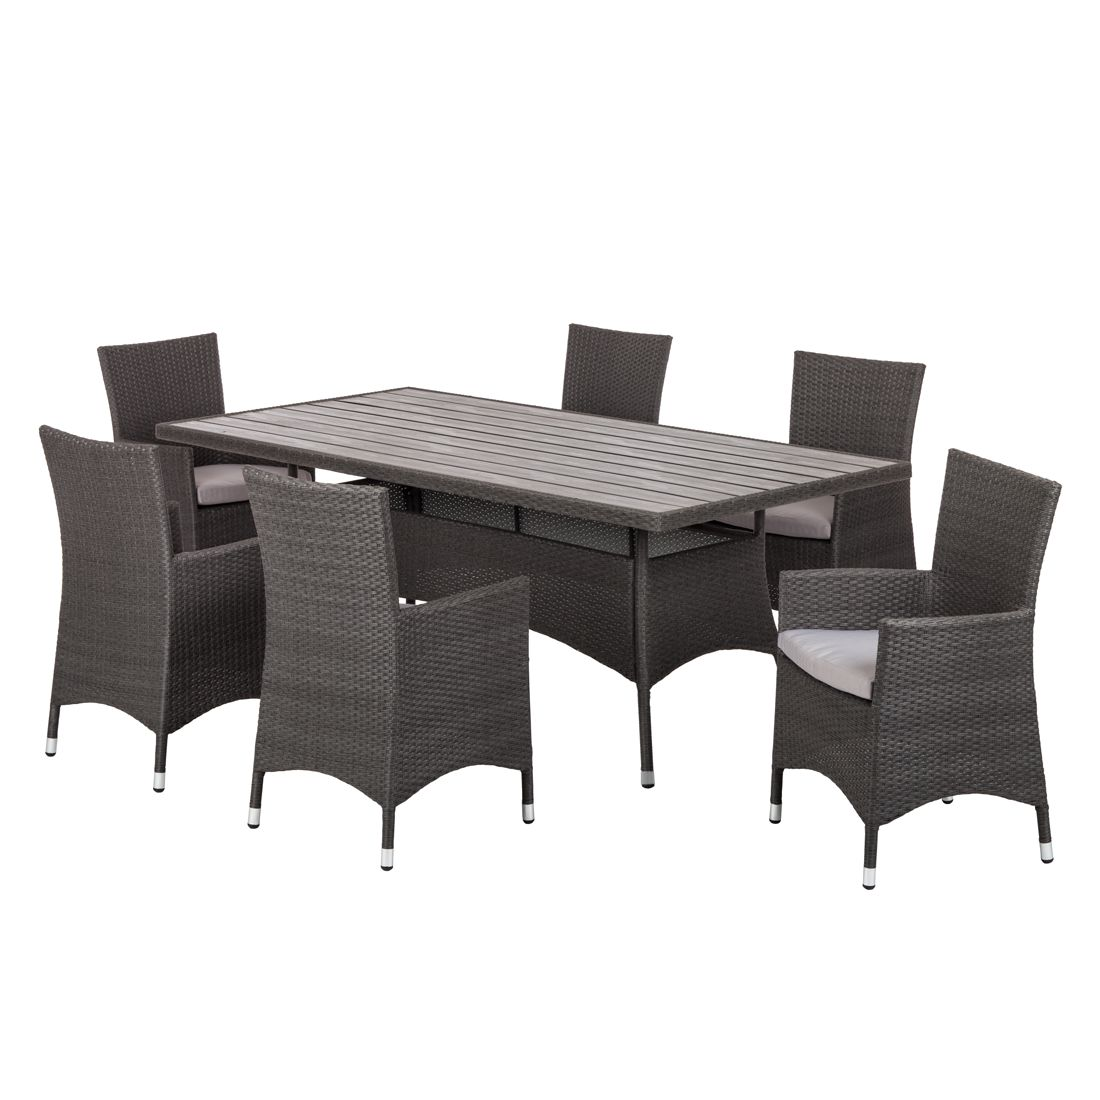 sitzgruppe paradise lounge i 7 teilig polyrattan grau. Black Bedroom Furniture Sets. Home Design Ideas